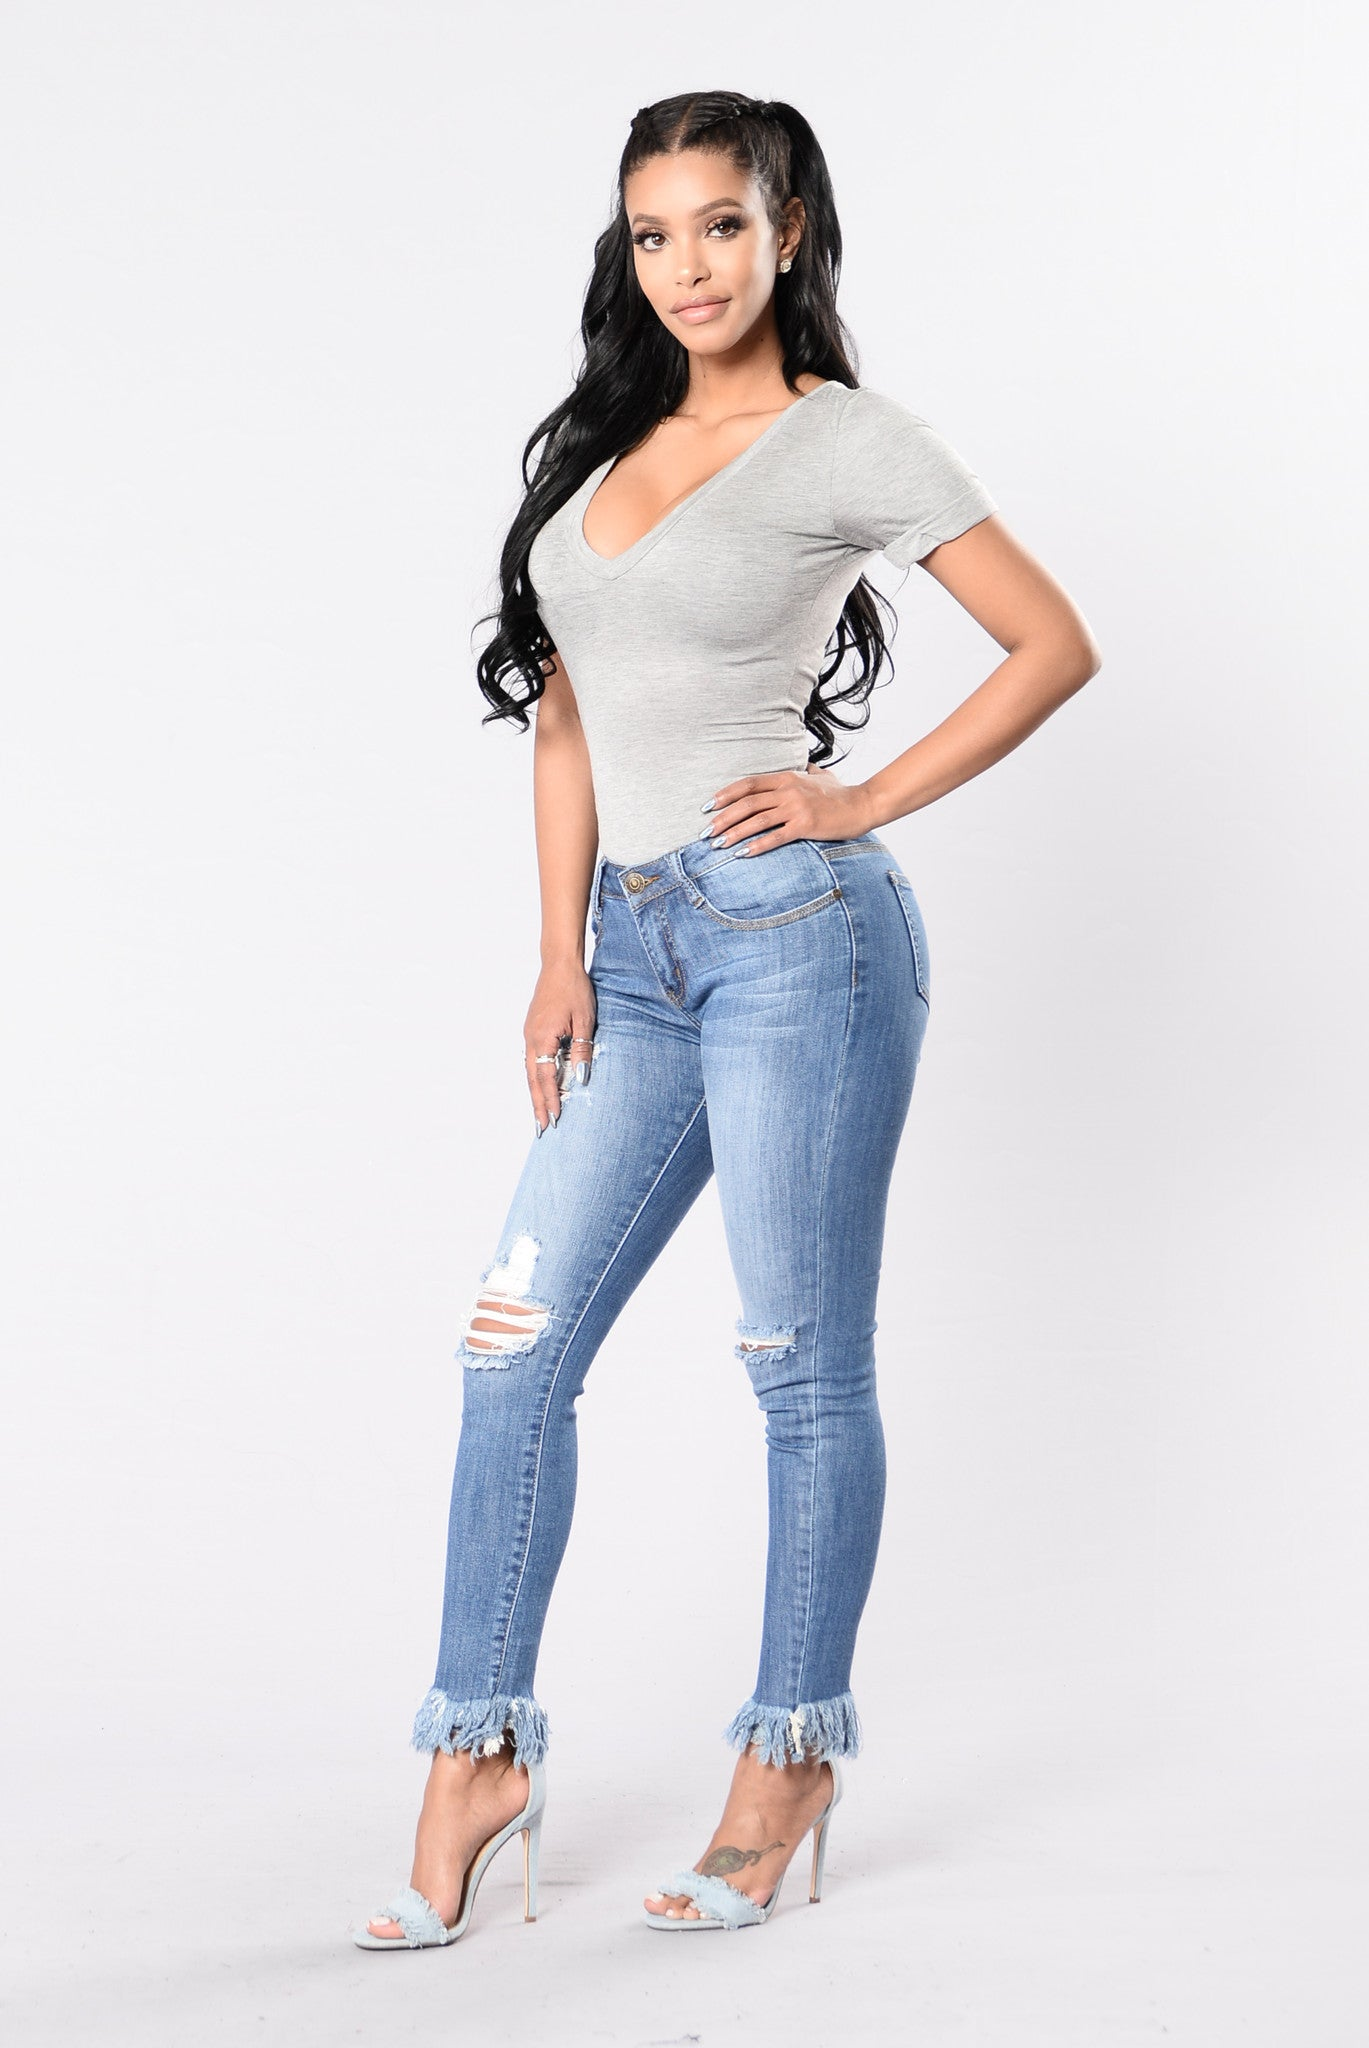 Shy Girl Jeans